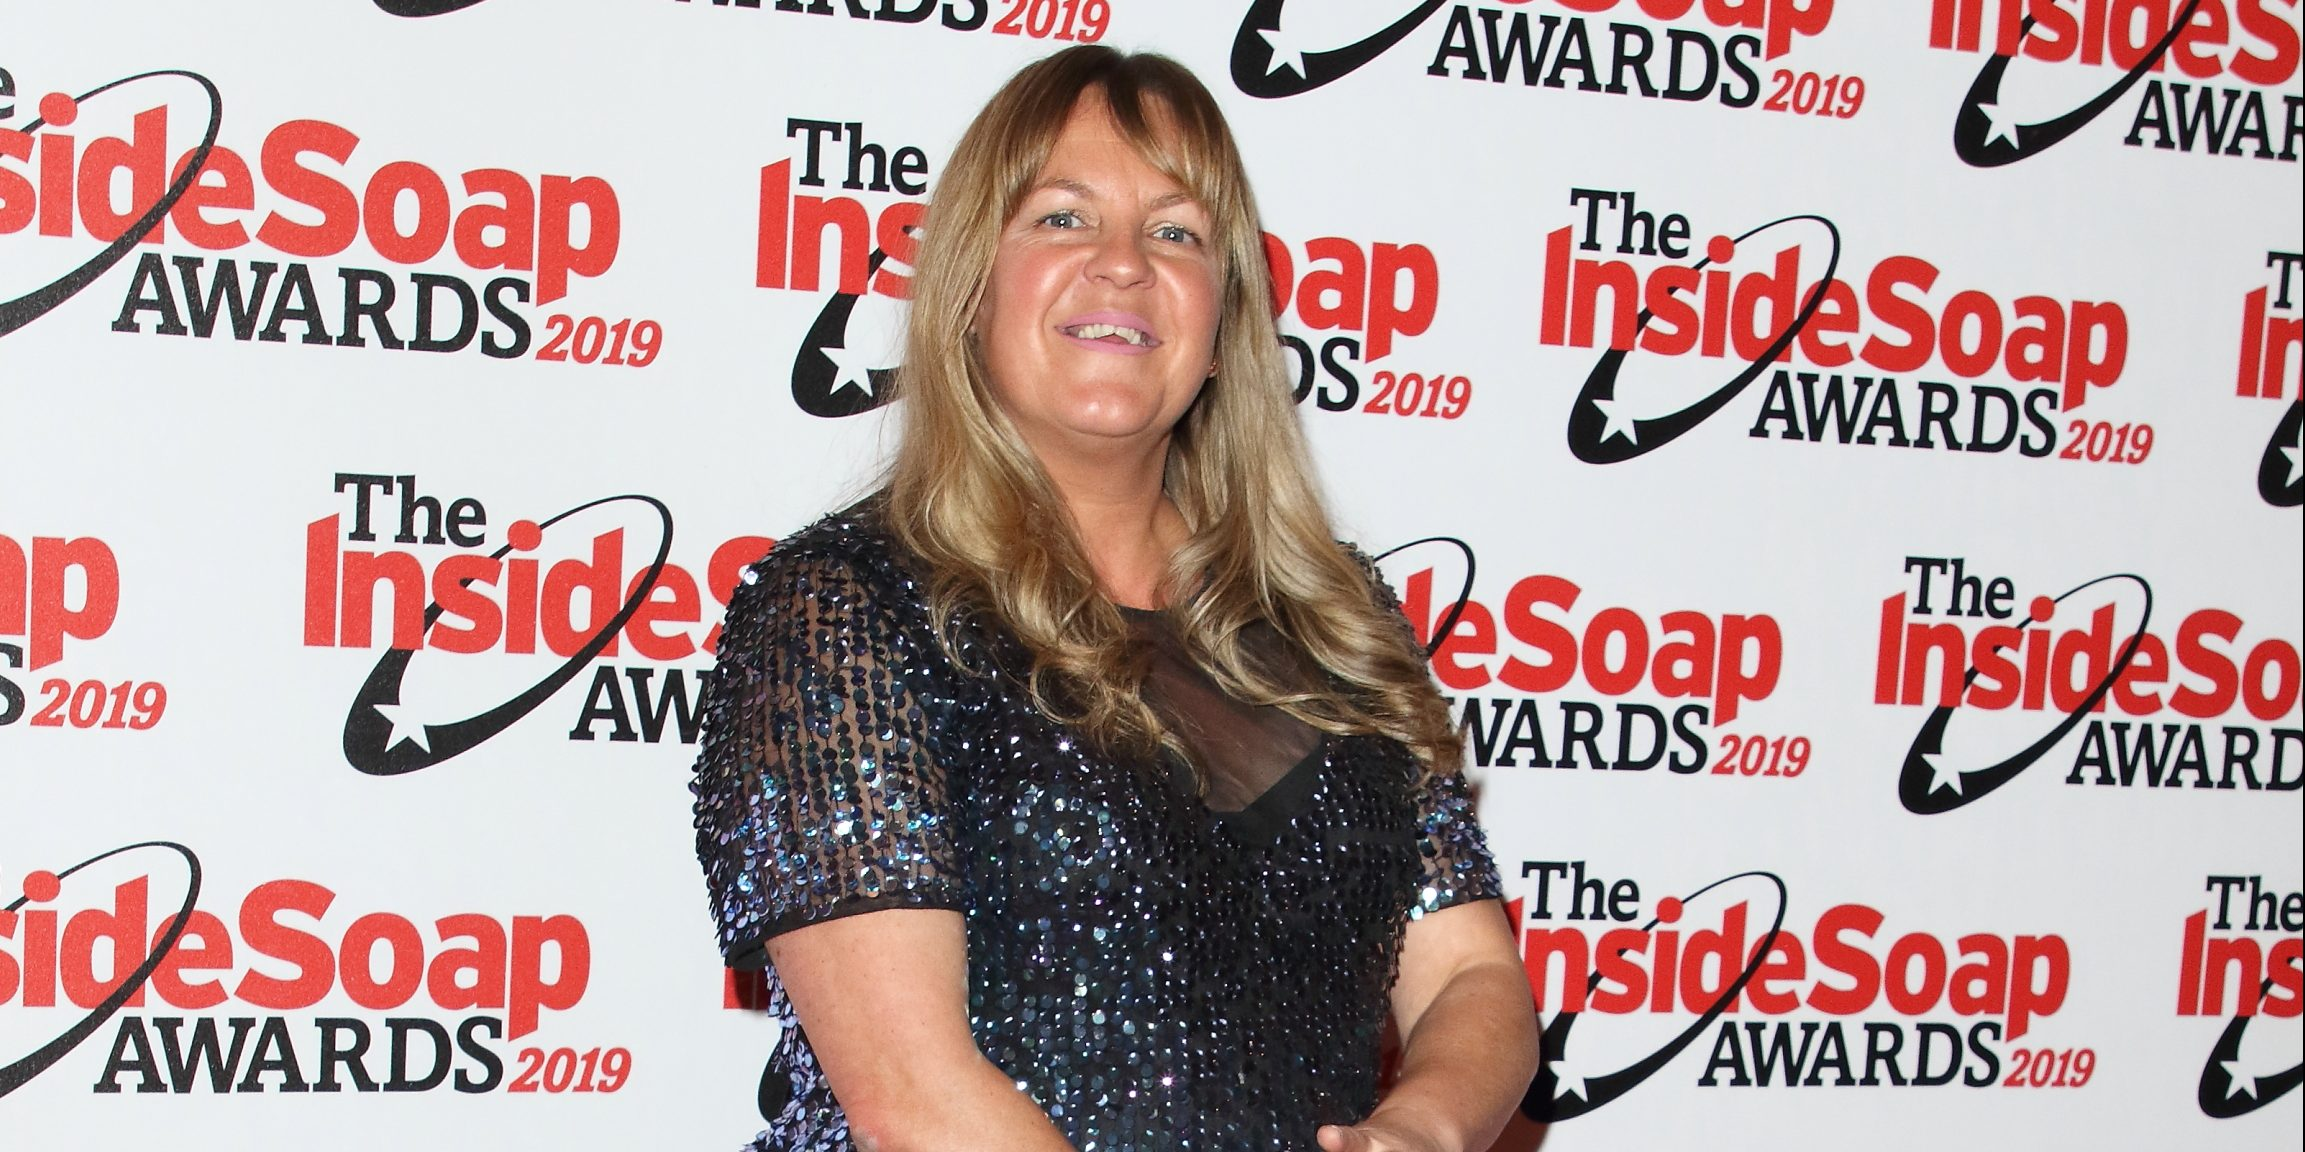 EastEnders' Lorraine Stanley enjoys night out with co-star Natalie Cassidy